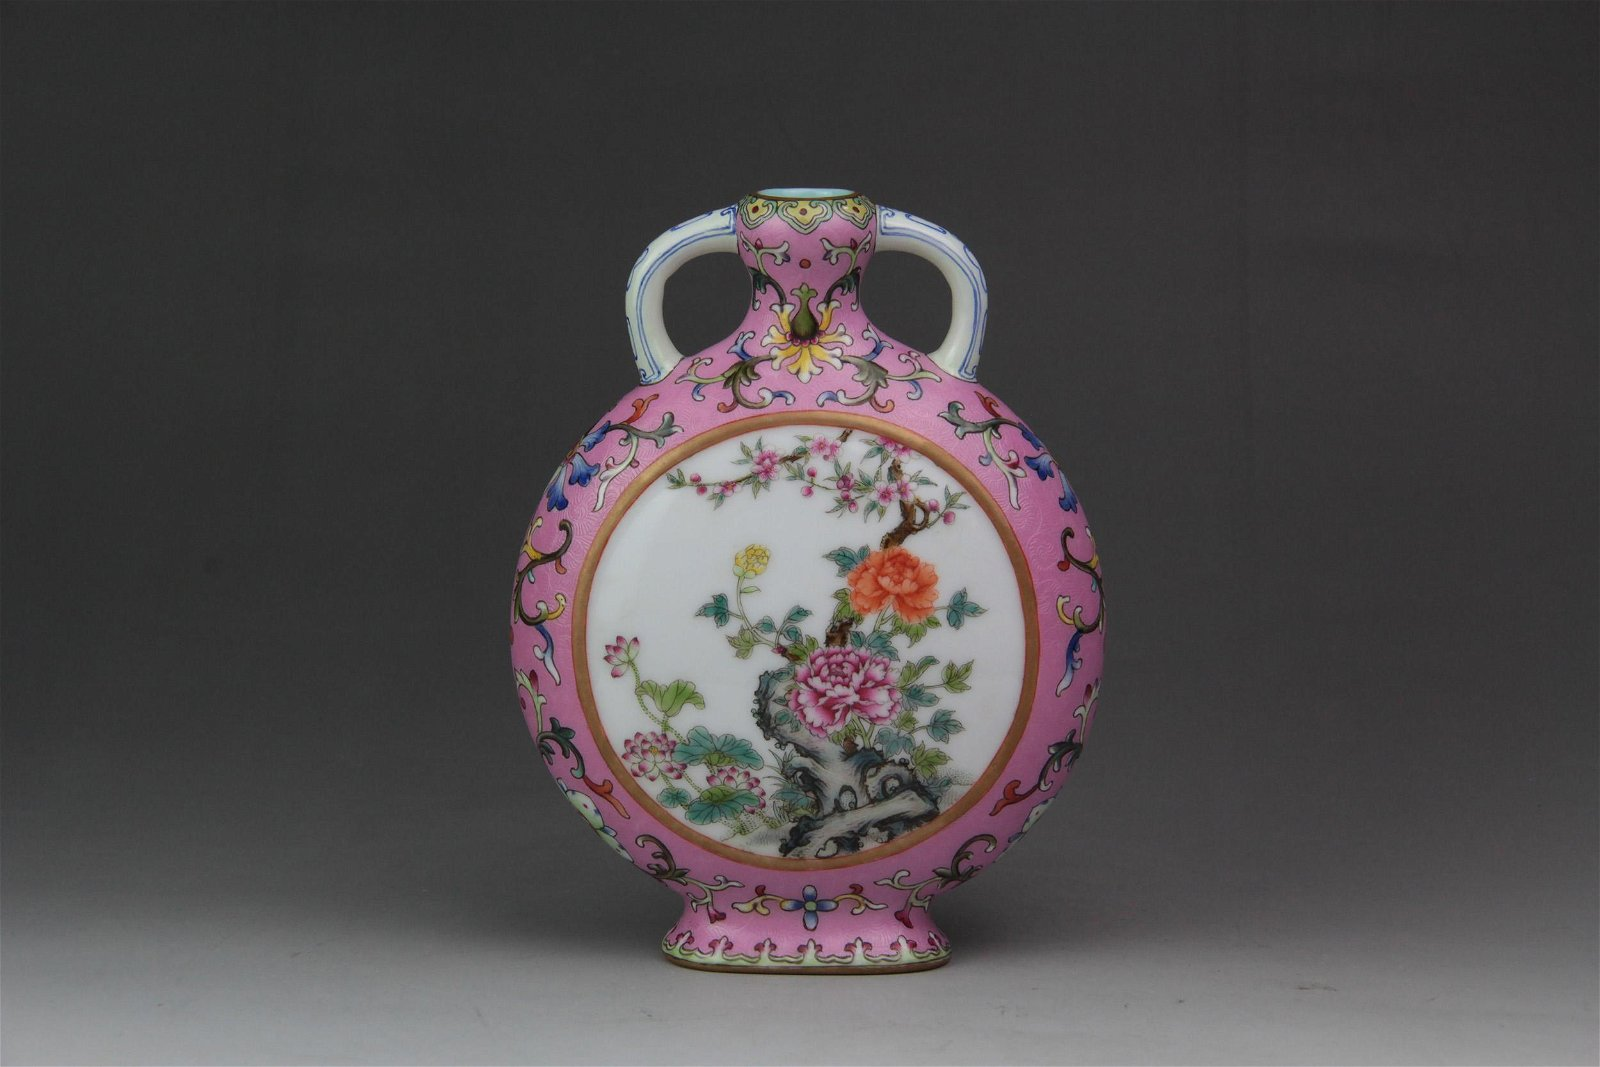 A CHINESE FAMILLE ROSE PORCELAIN VASE WITH DOUBLE EARS